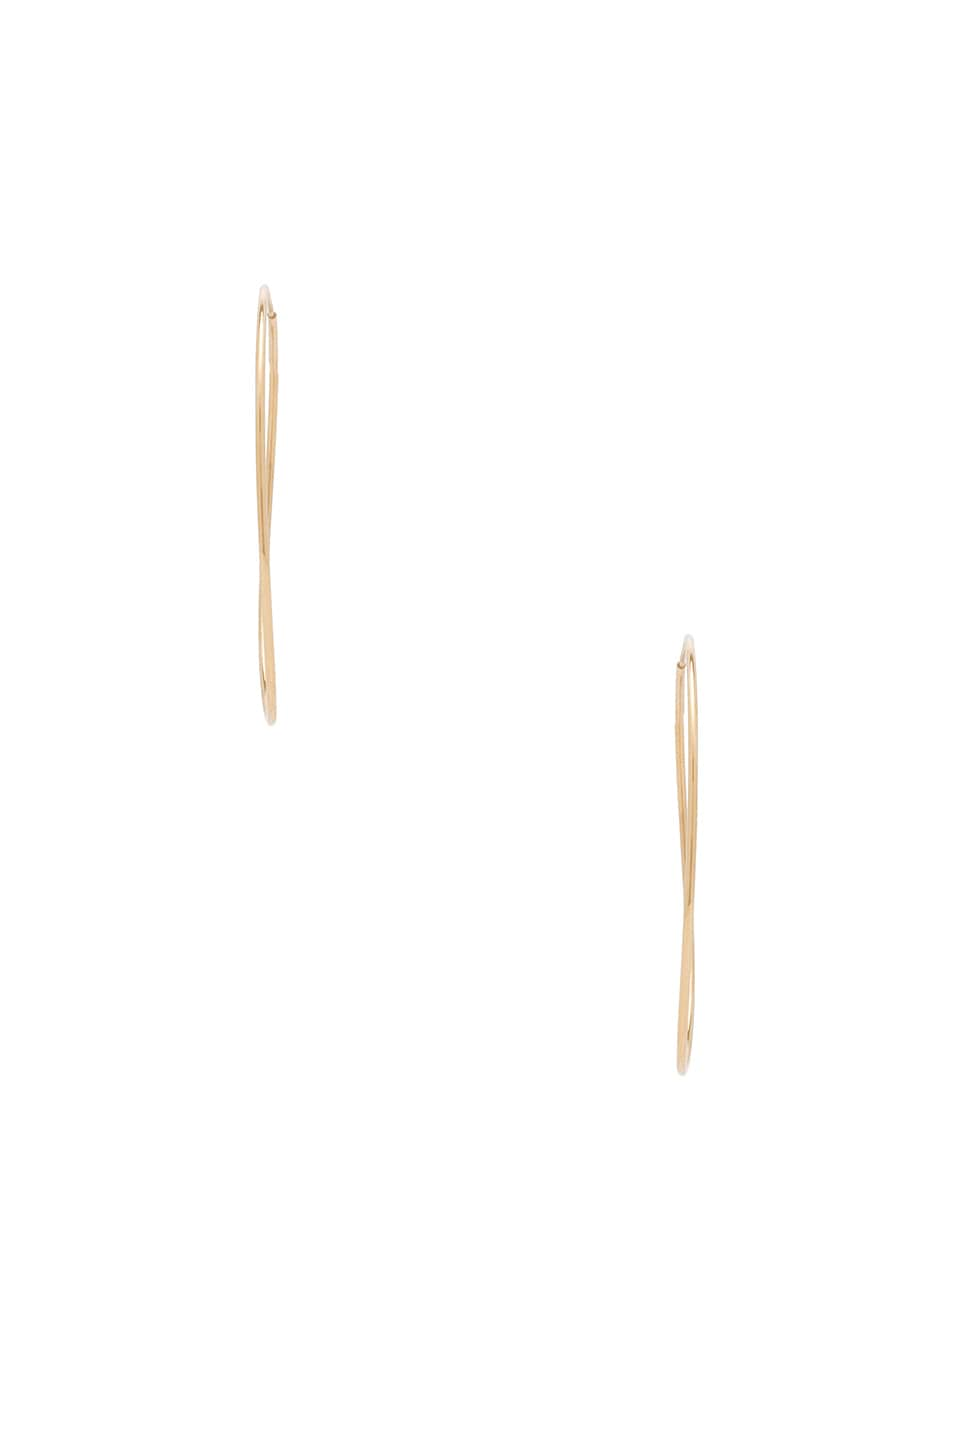 Image 2 of ERTH 14K Gold Hoop II Earring in Gold